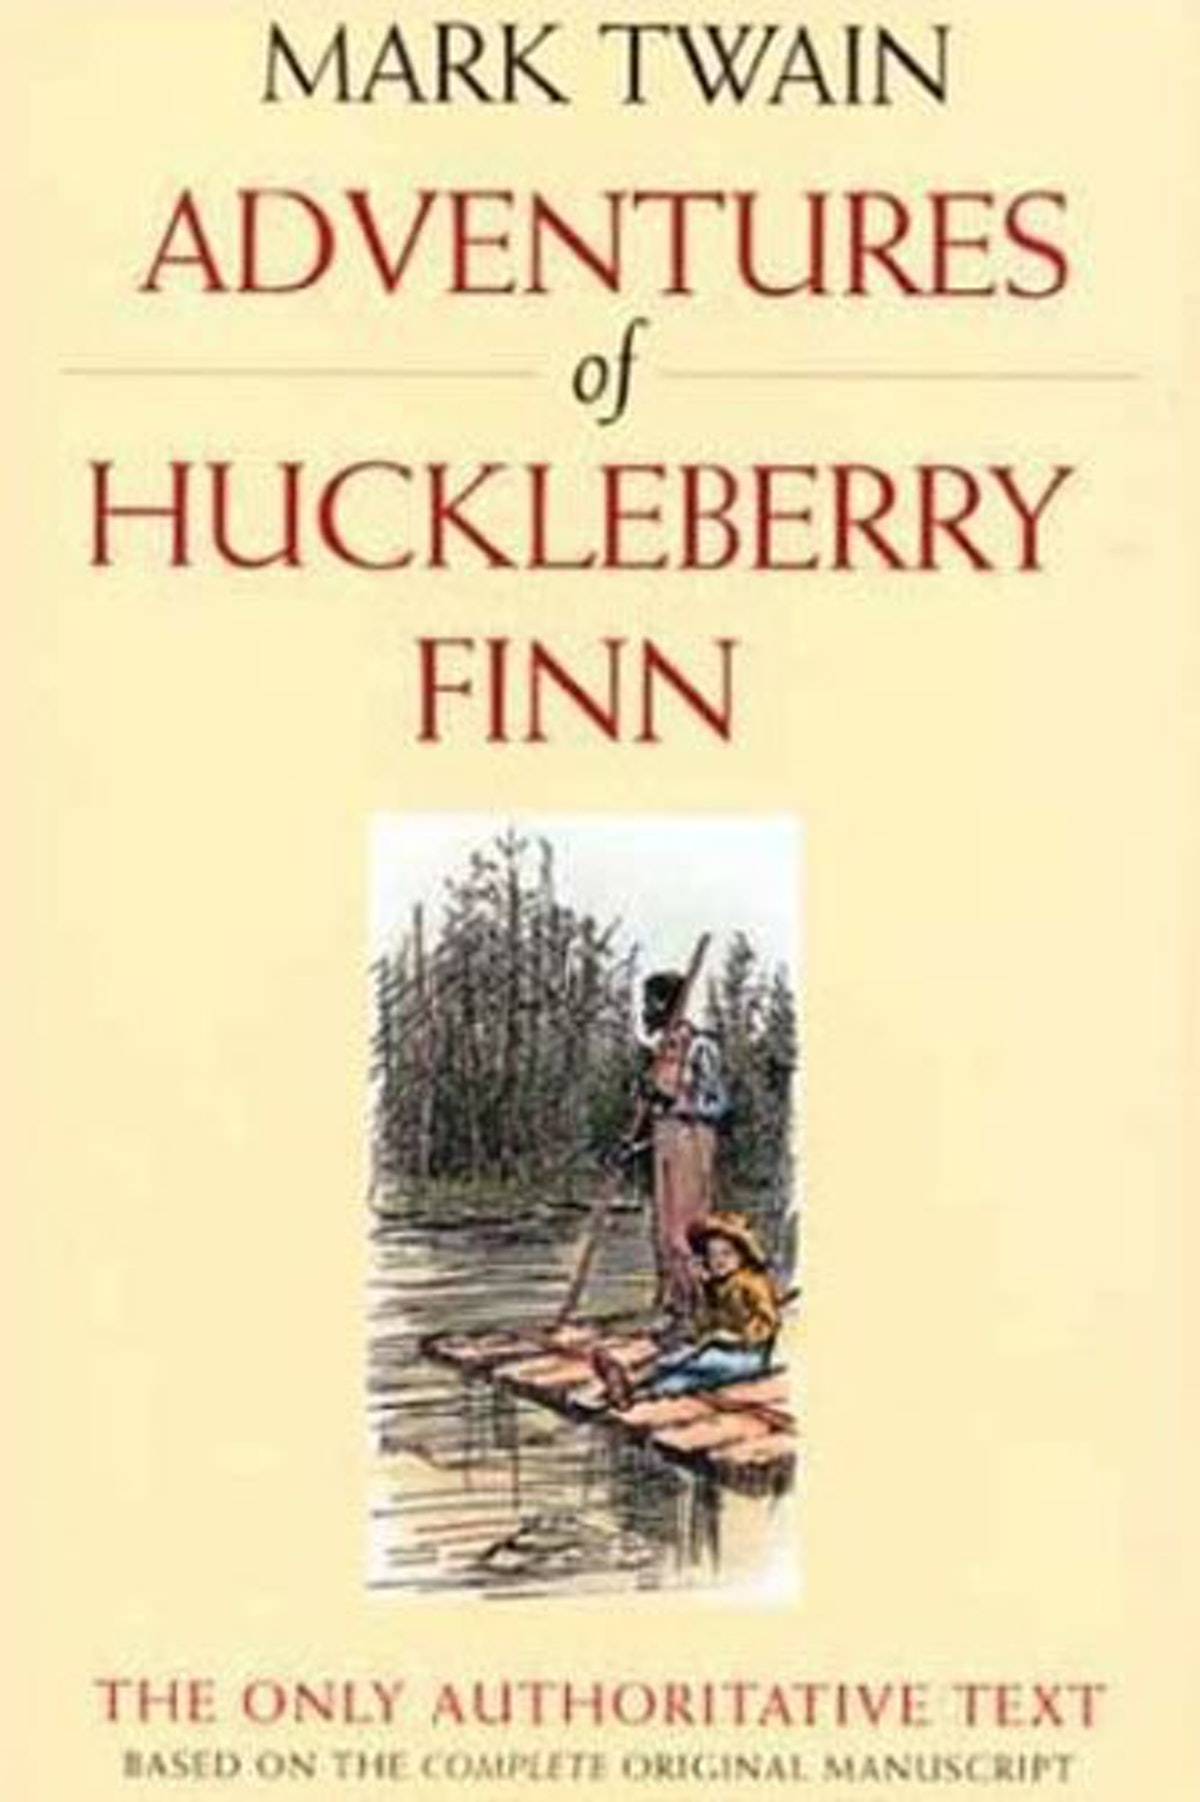 weltanschauung of mark twain in the novel adventures of huckleberry finn Issuu is a digital publishing  dale mathers meaning and purpose in analytical psychology,  the adventures of tom sawyer and huckleberry finn by mark twain.